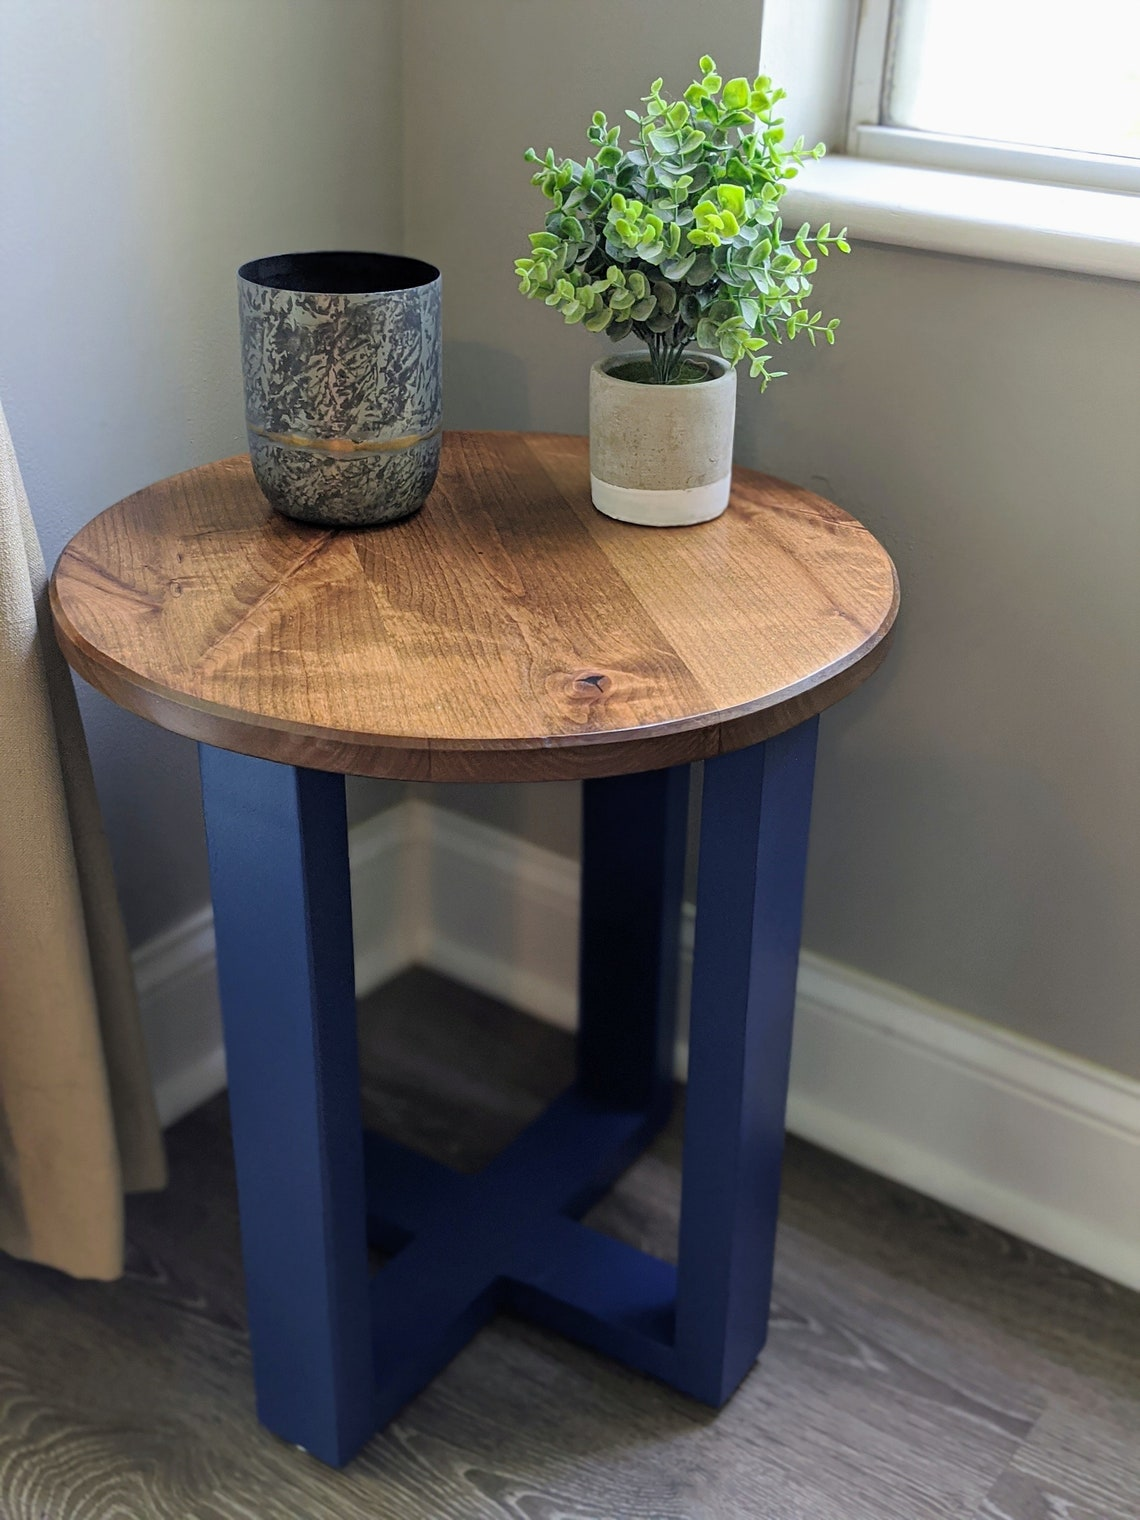 Handmade Two-Tone Rustic Side Table. Geometric Modern Side Table with Round Table Top. Farmhouse Decor. Rustic Home Decor & Rustic Furniture